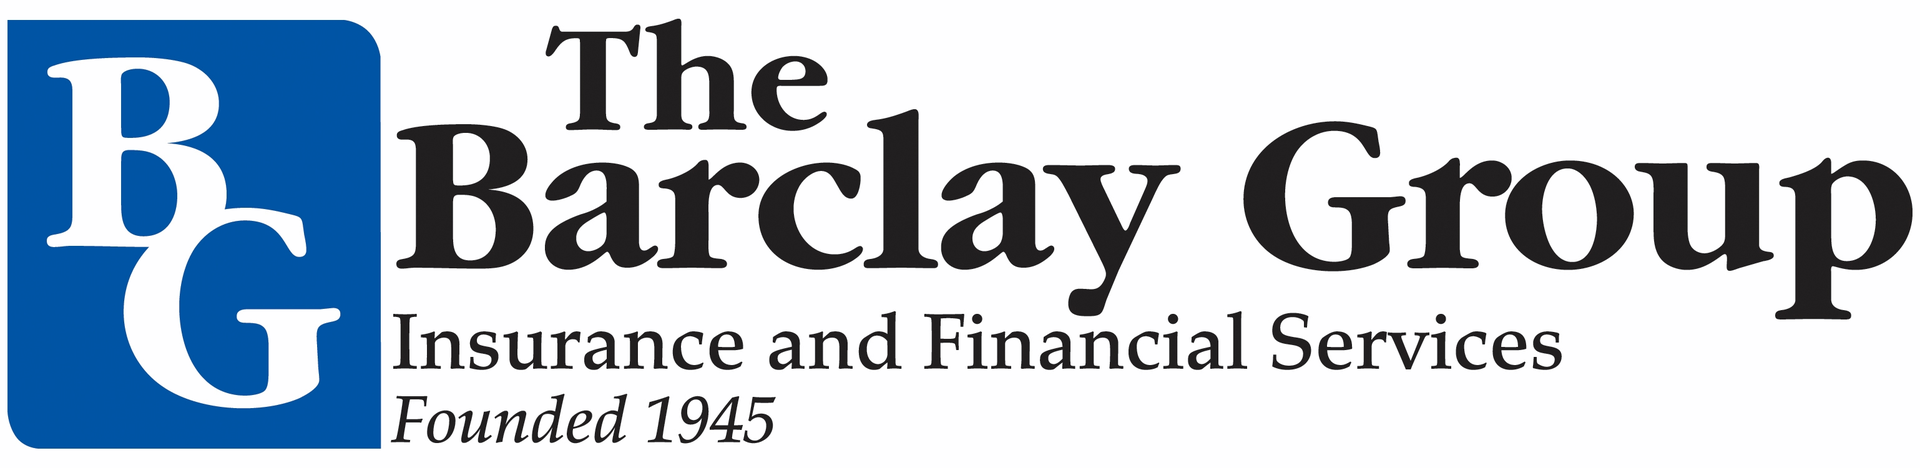 The Barclay Group